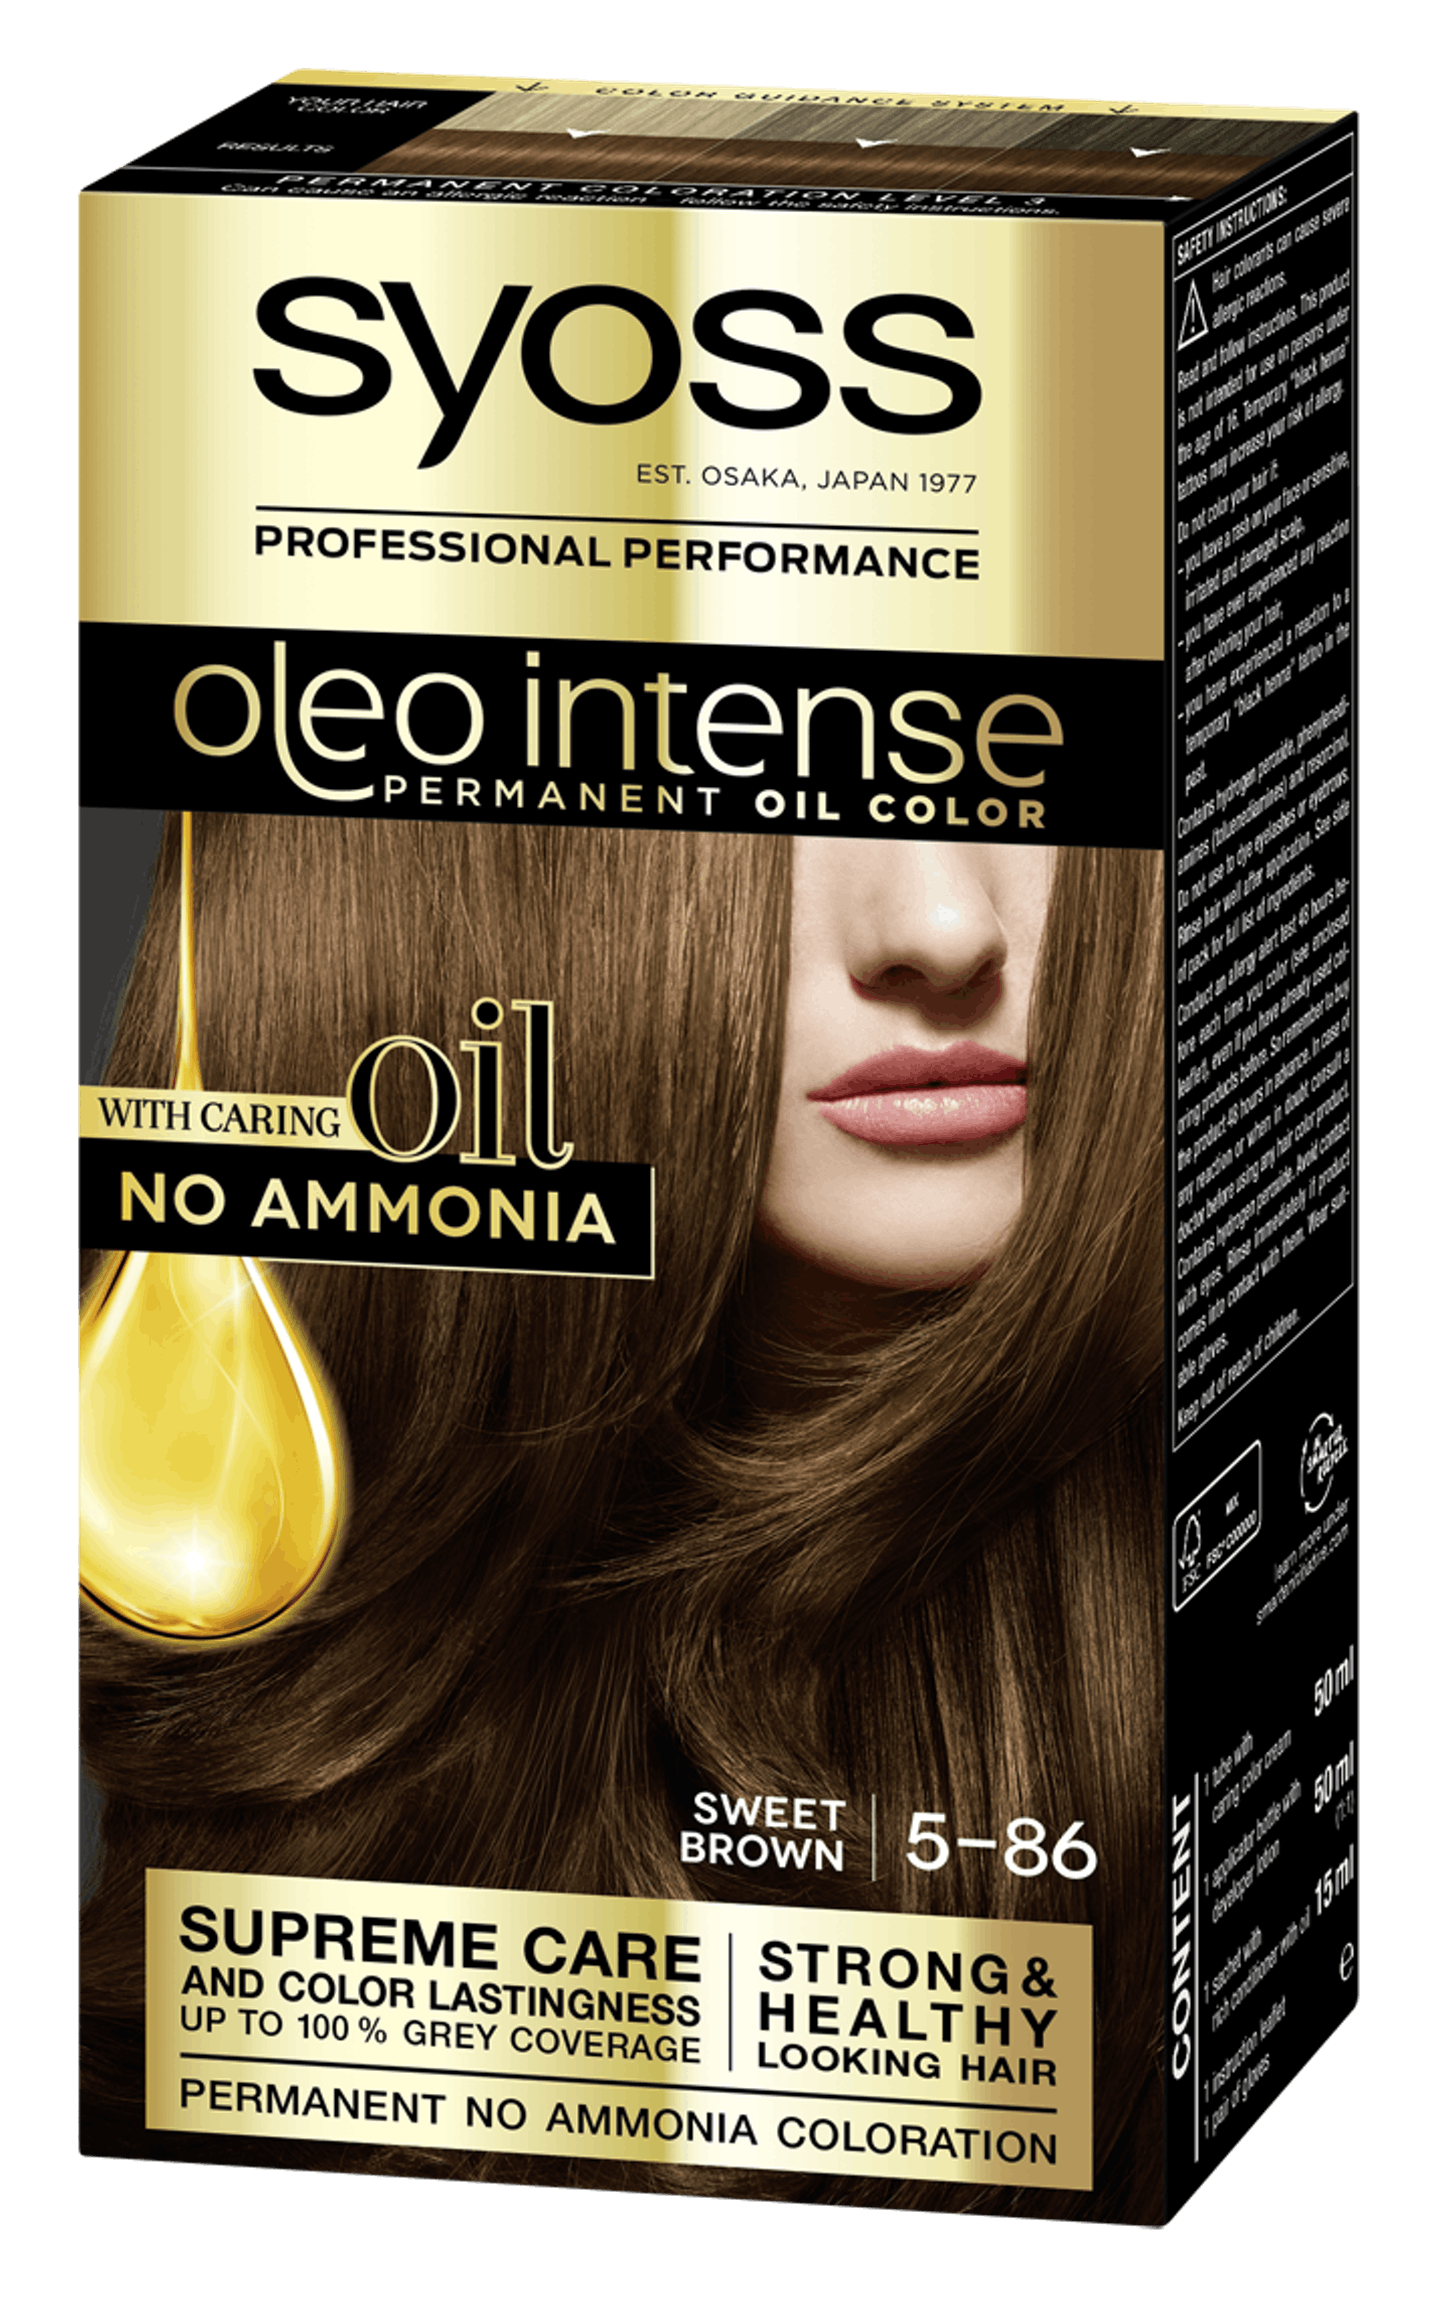 Syoss Oleo Intense Permanent Oil Color 5-86 Sweet Brown